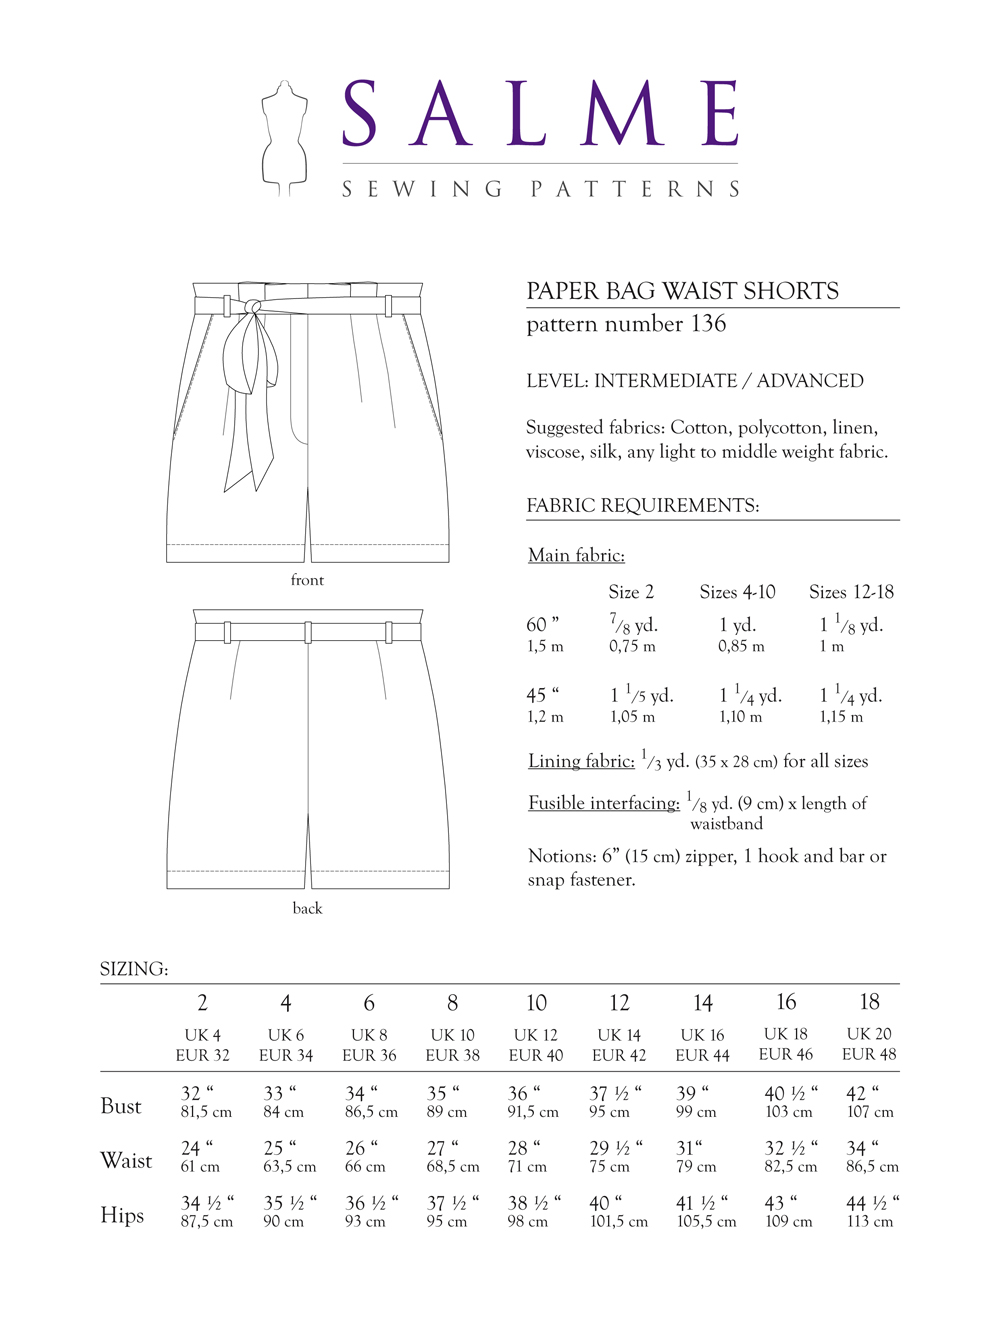 Salme Sewing Patterns 136 Paper Bag Waist Shorts Downloadable Pattern